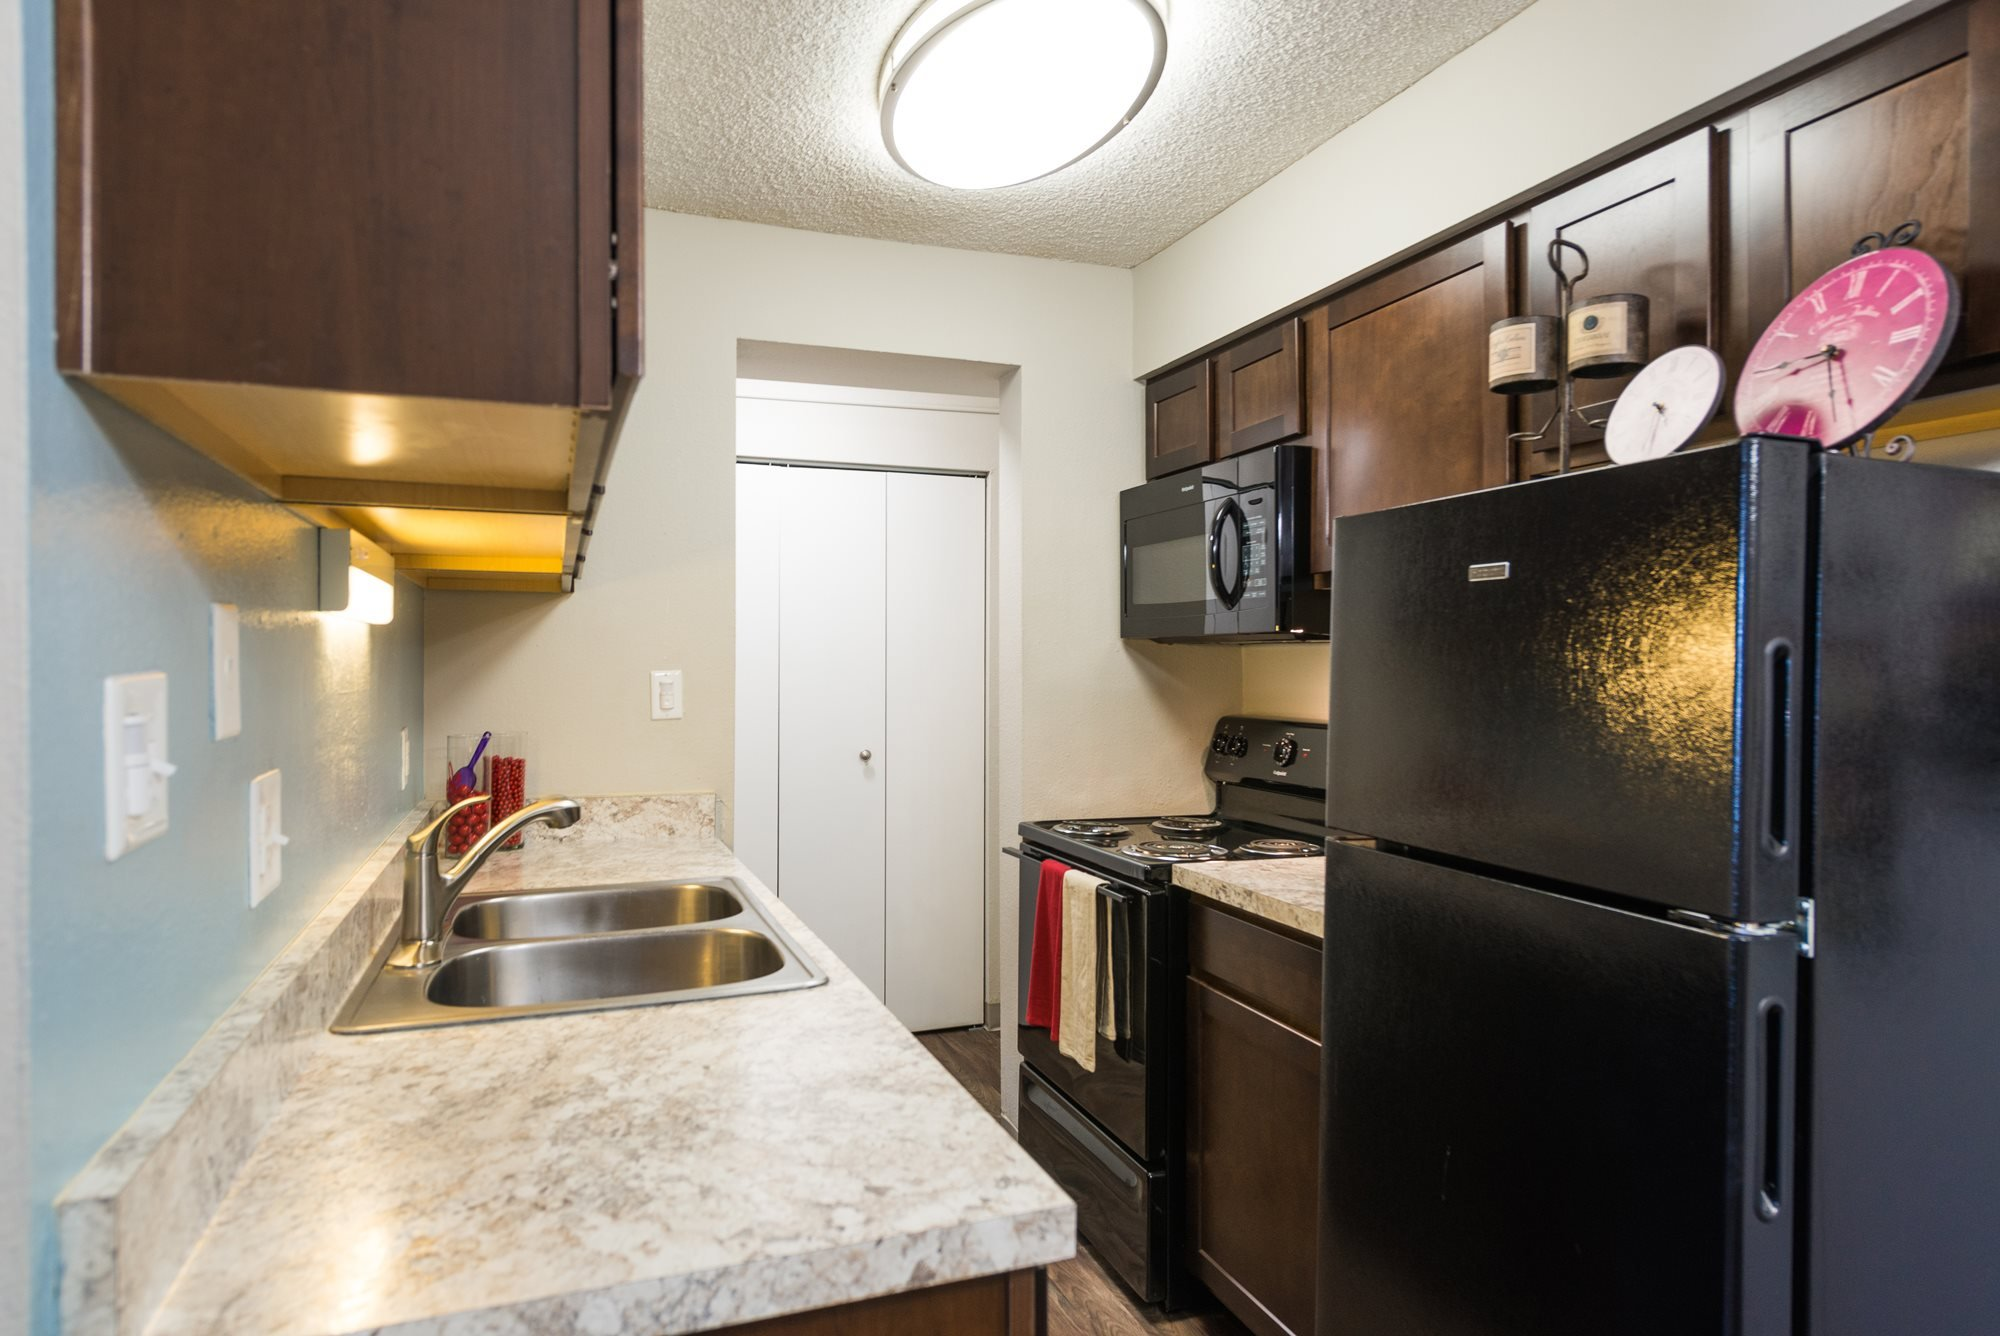 Kitchen at Park 88 Apartments in Thornton, CO